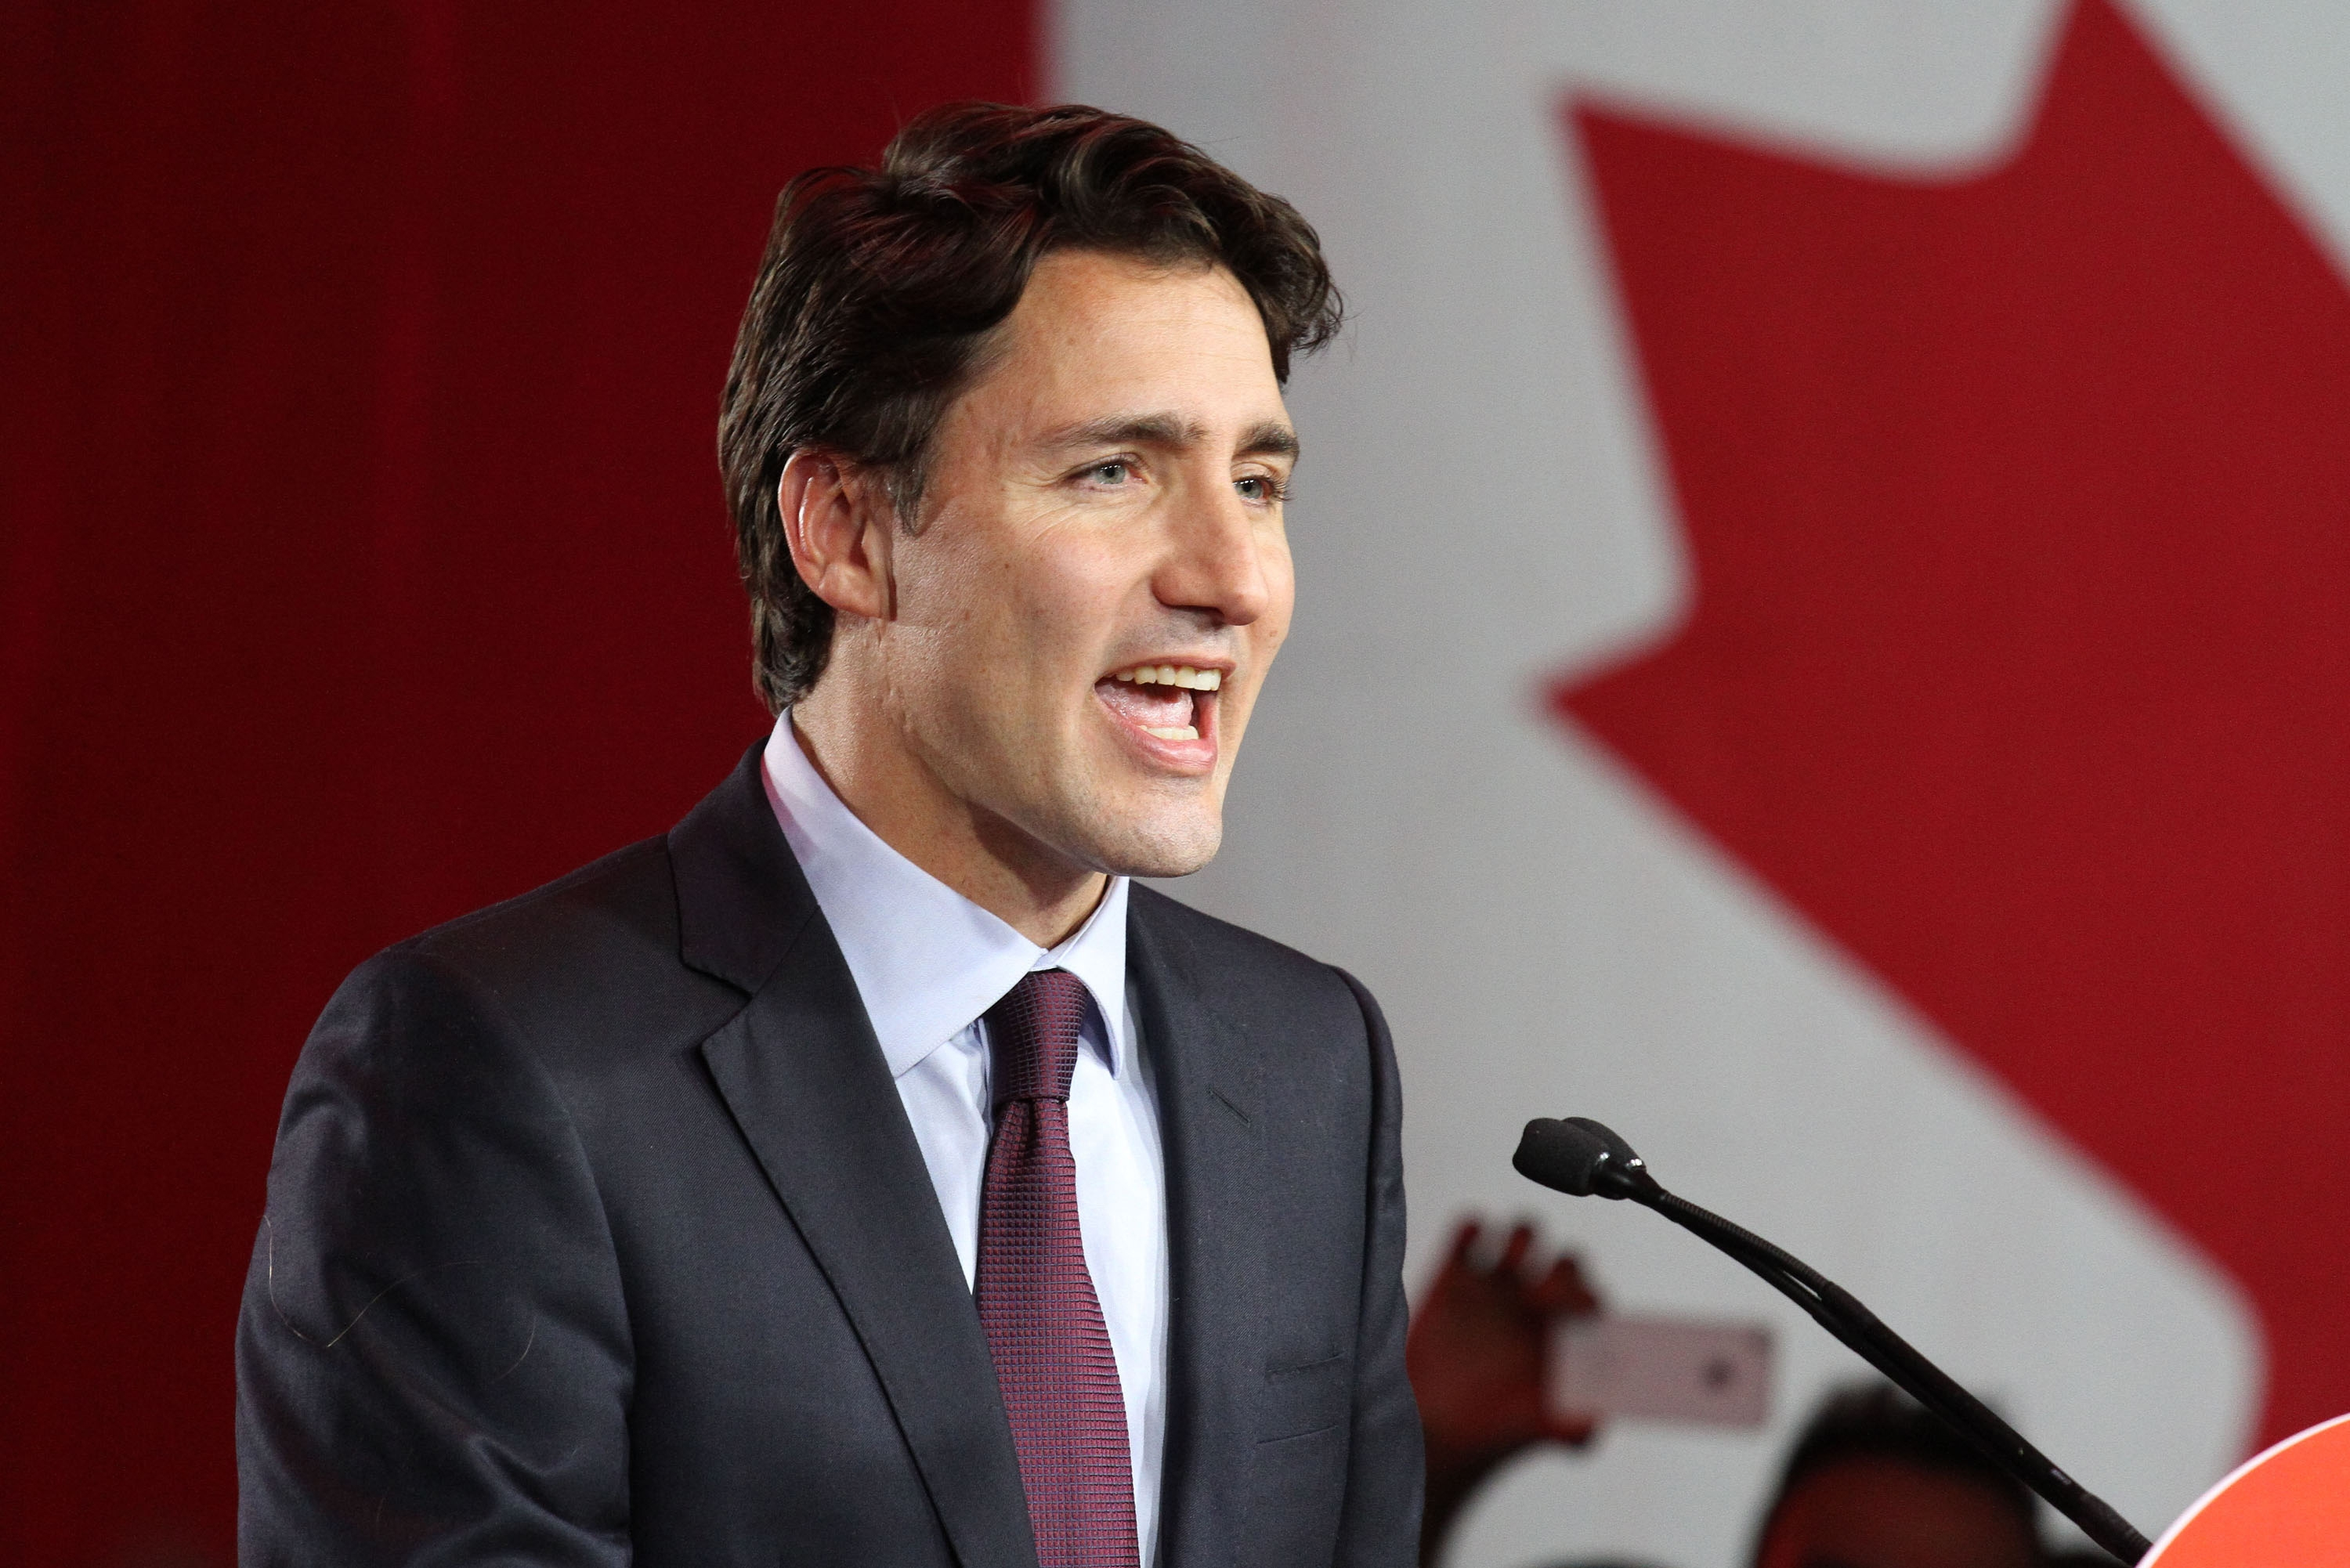 New Prime Minister Justin Trudeau's promise to boost the Canadian economy could benefit Western New York. (TNS)